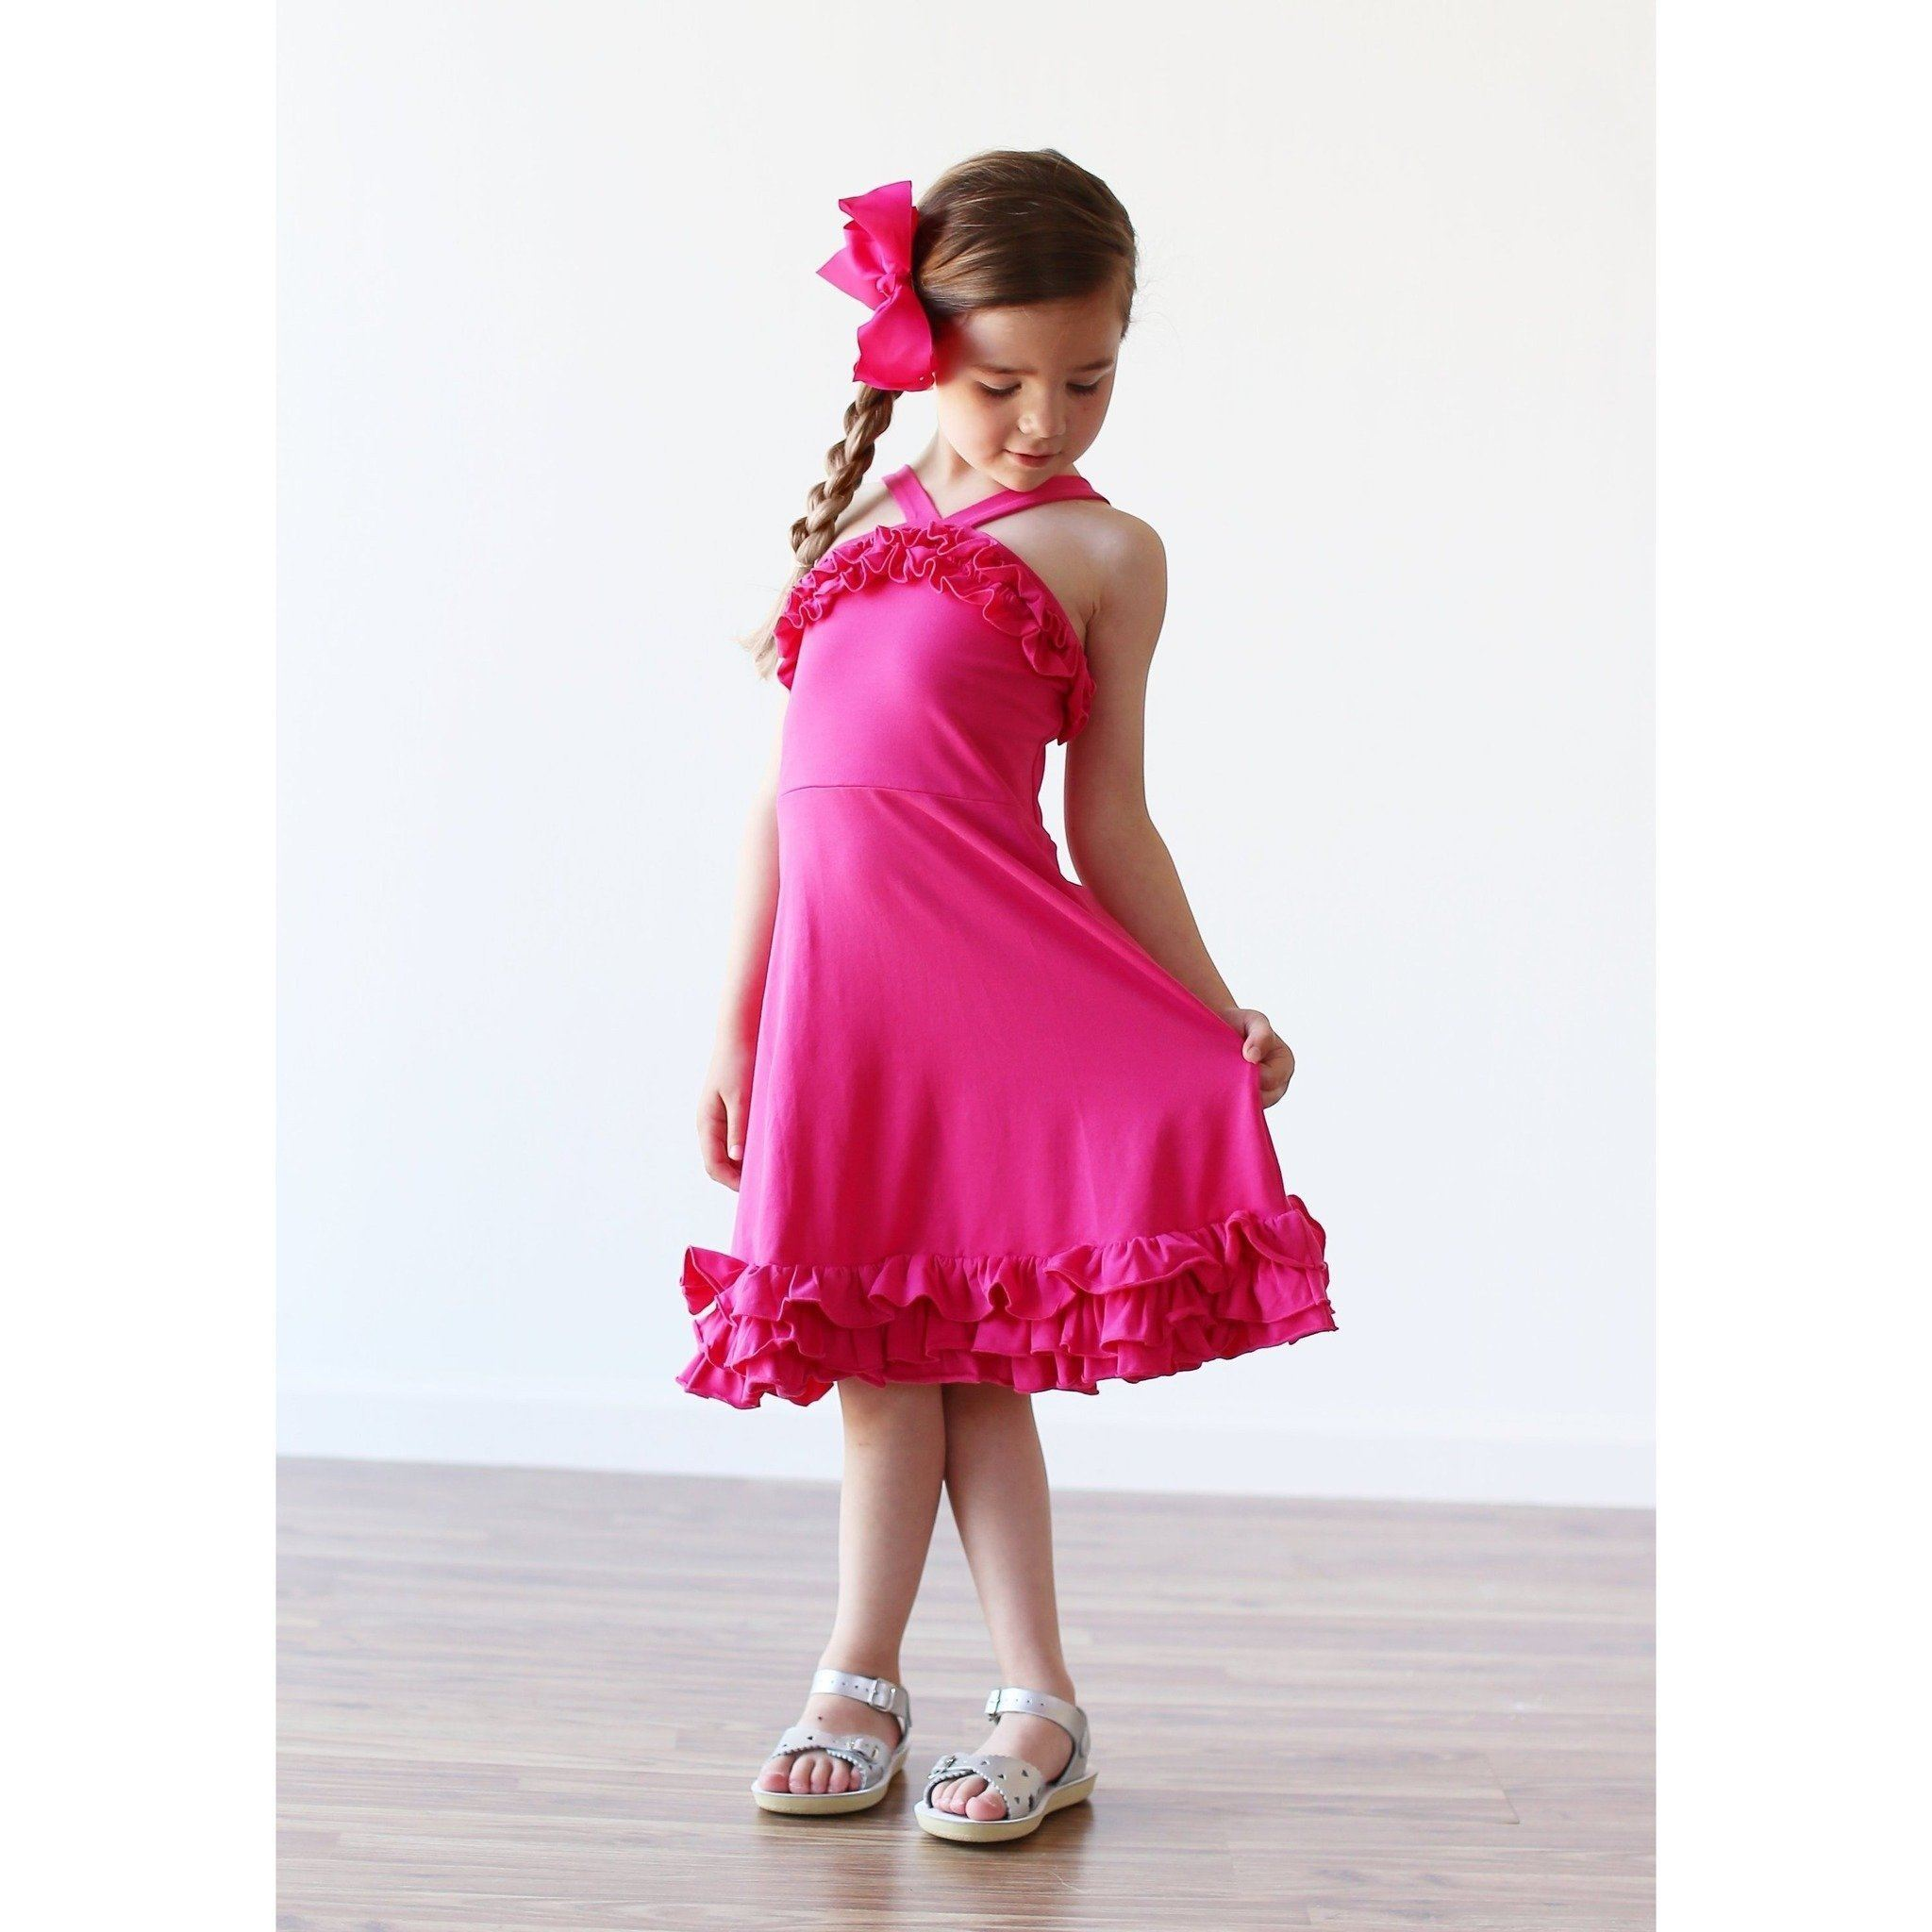 Adorable Essentials, Willa Dress,Dresses,Adorable Essentials, LLC